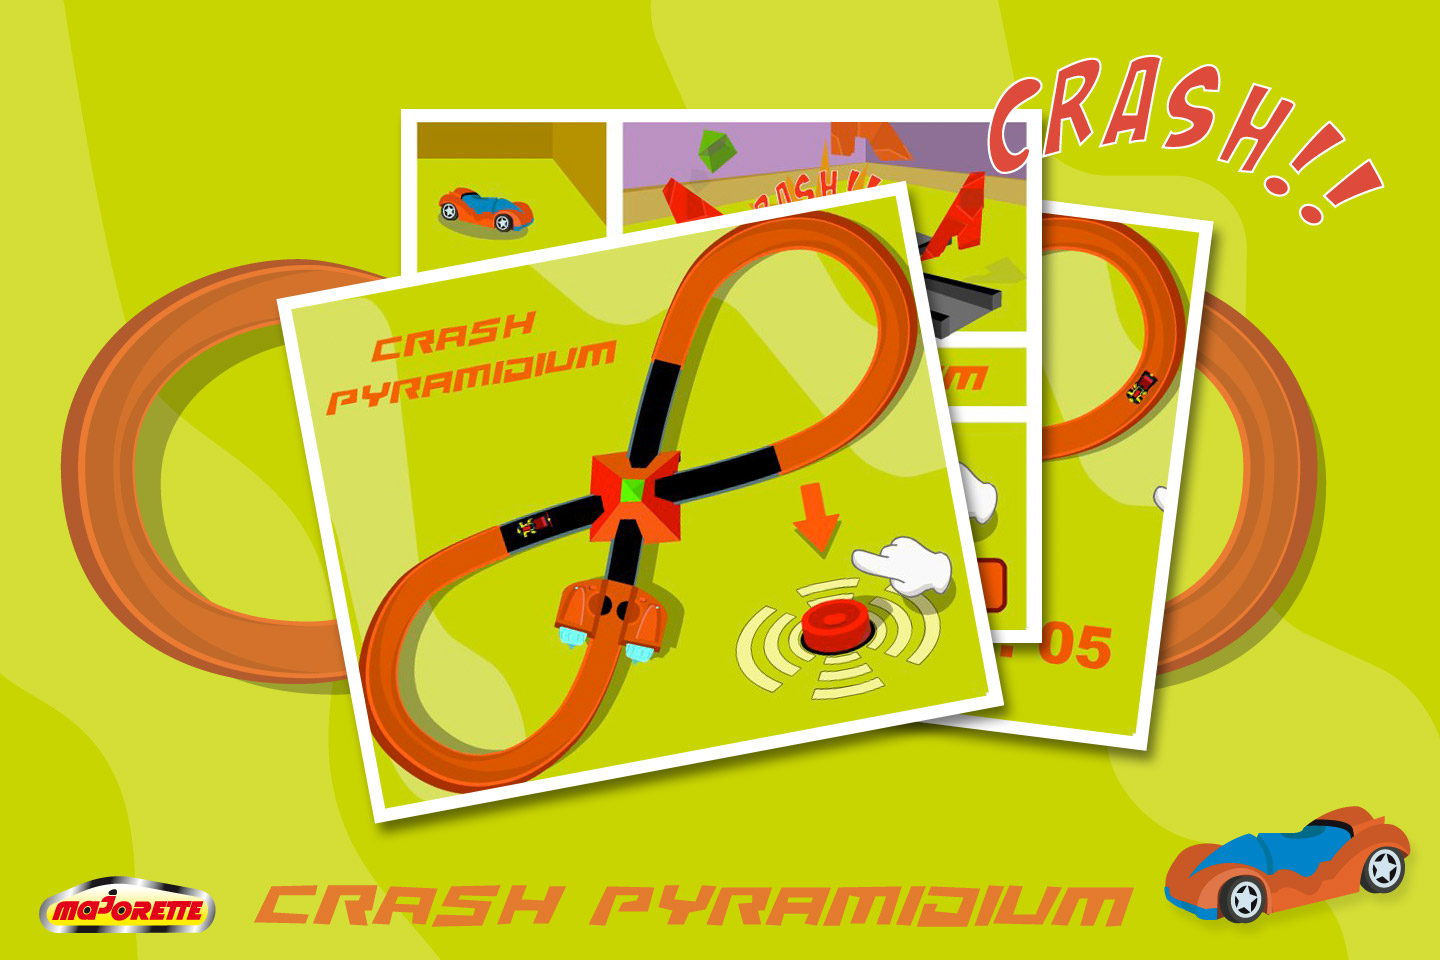 E_Flash_06_CrashPyramidium